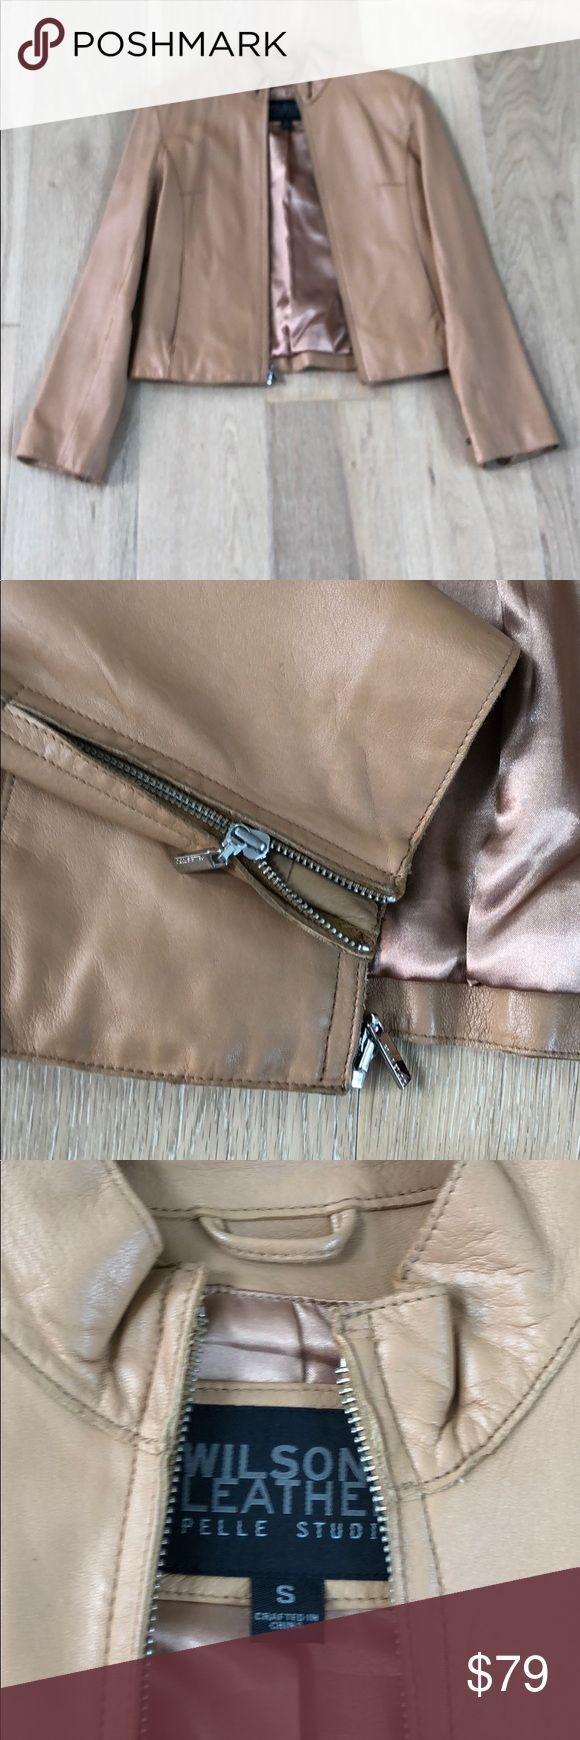 Camel leather Moto jacket Beautiful camel colored leather jacket in excellent condition. This 100% genuine leather jacket is the softest leather with zipper detail at the wrists and slit pockets in the front. Wilsons Leather Jackets & Coats